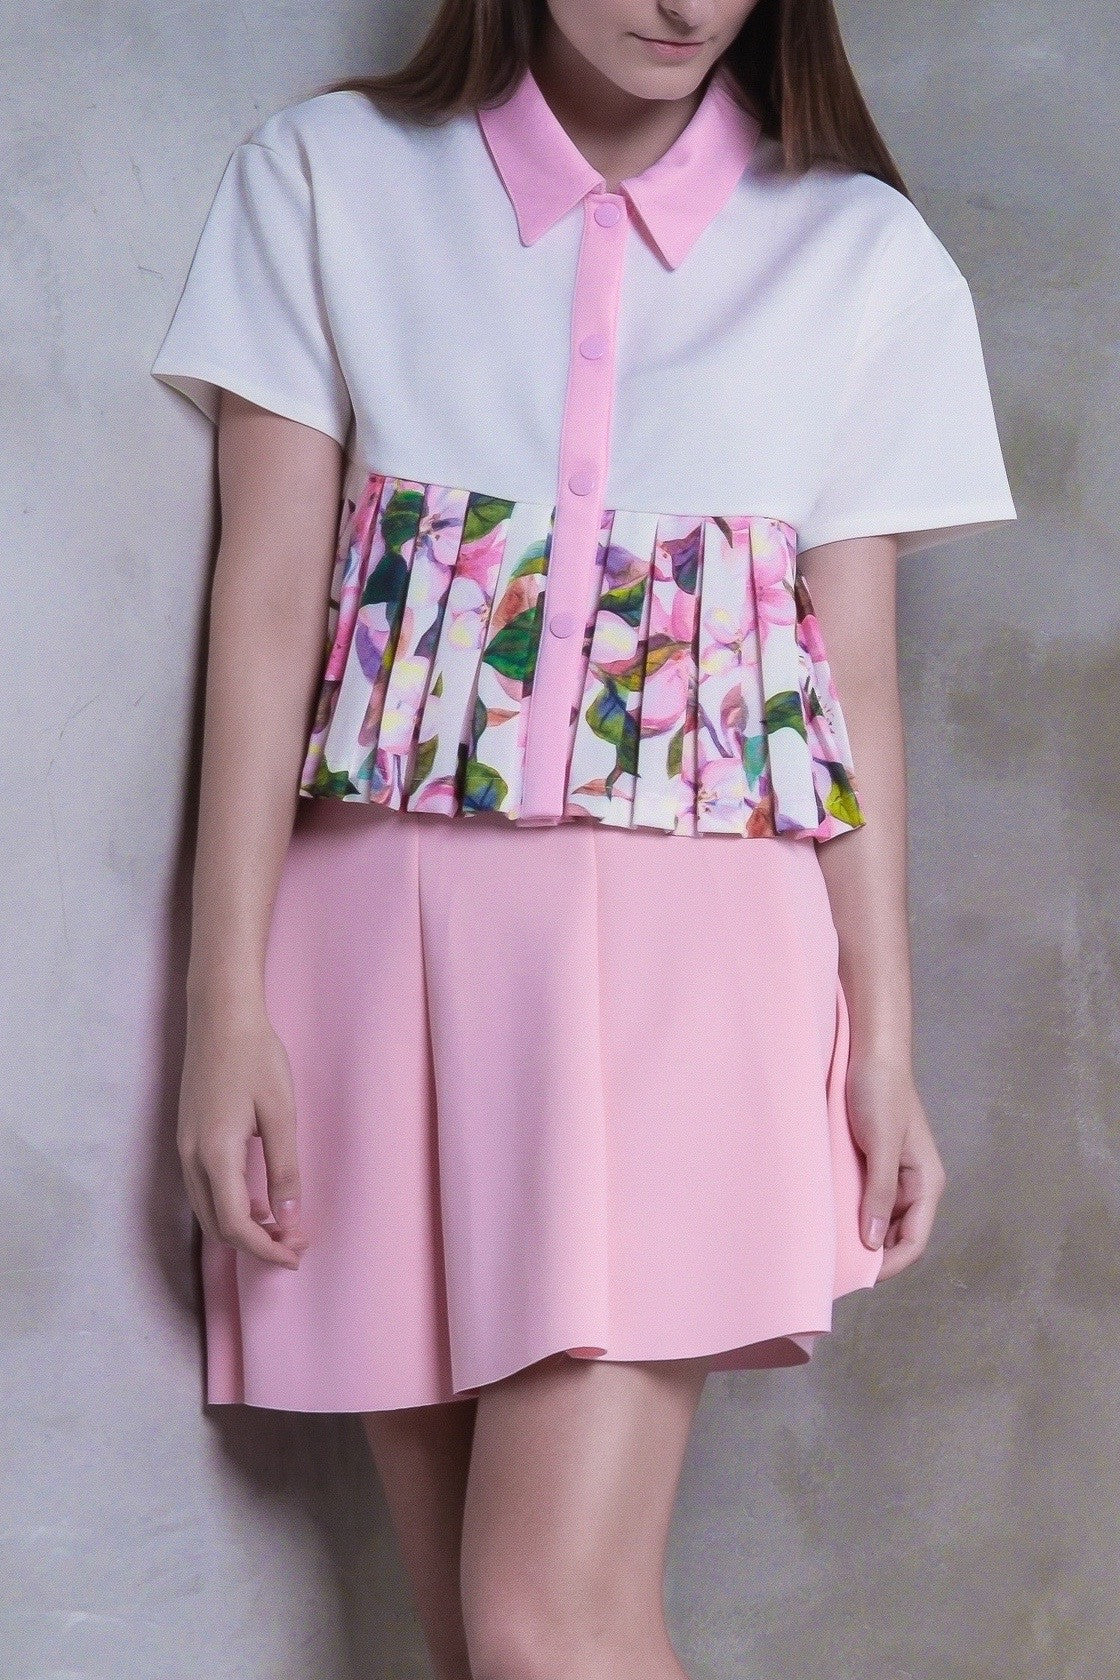 Sakura Pleat Top - GlanceZ   - 4